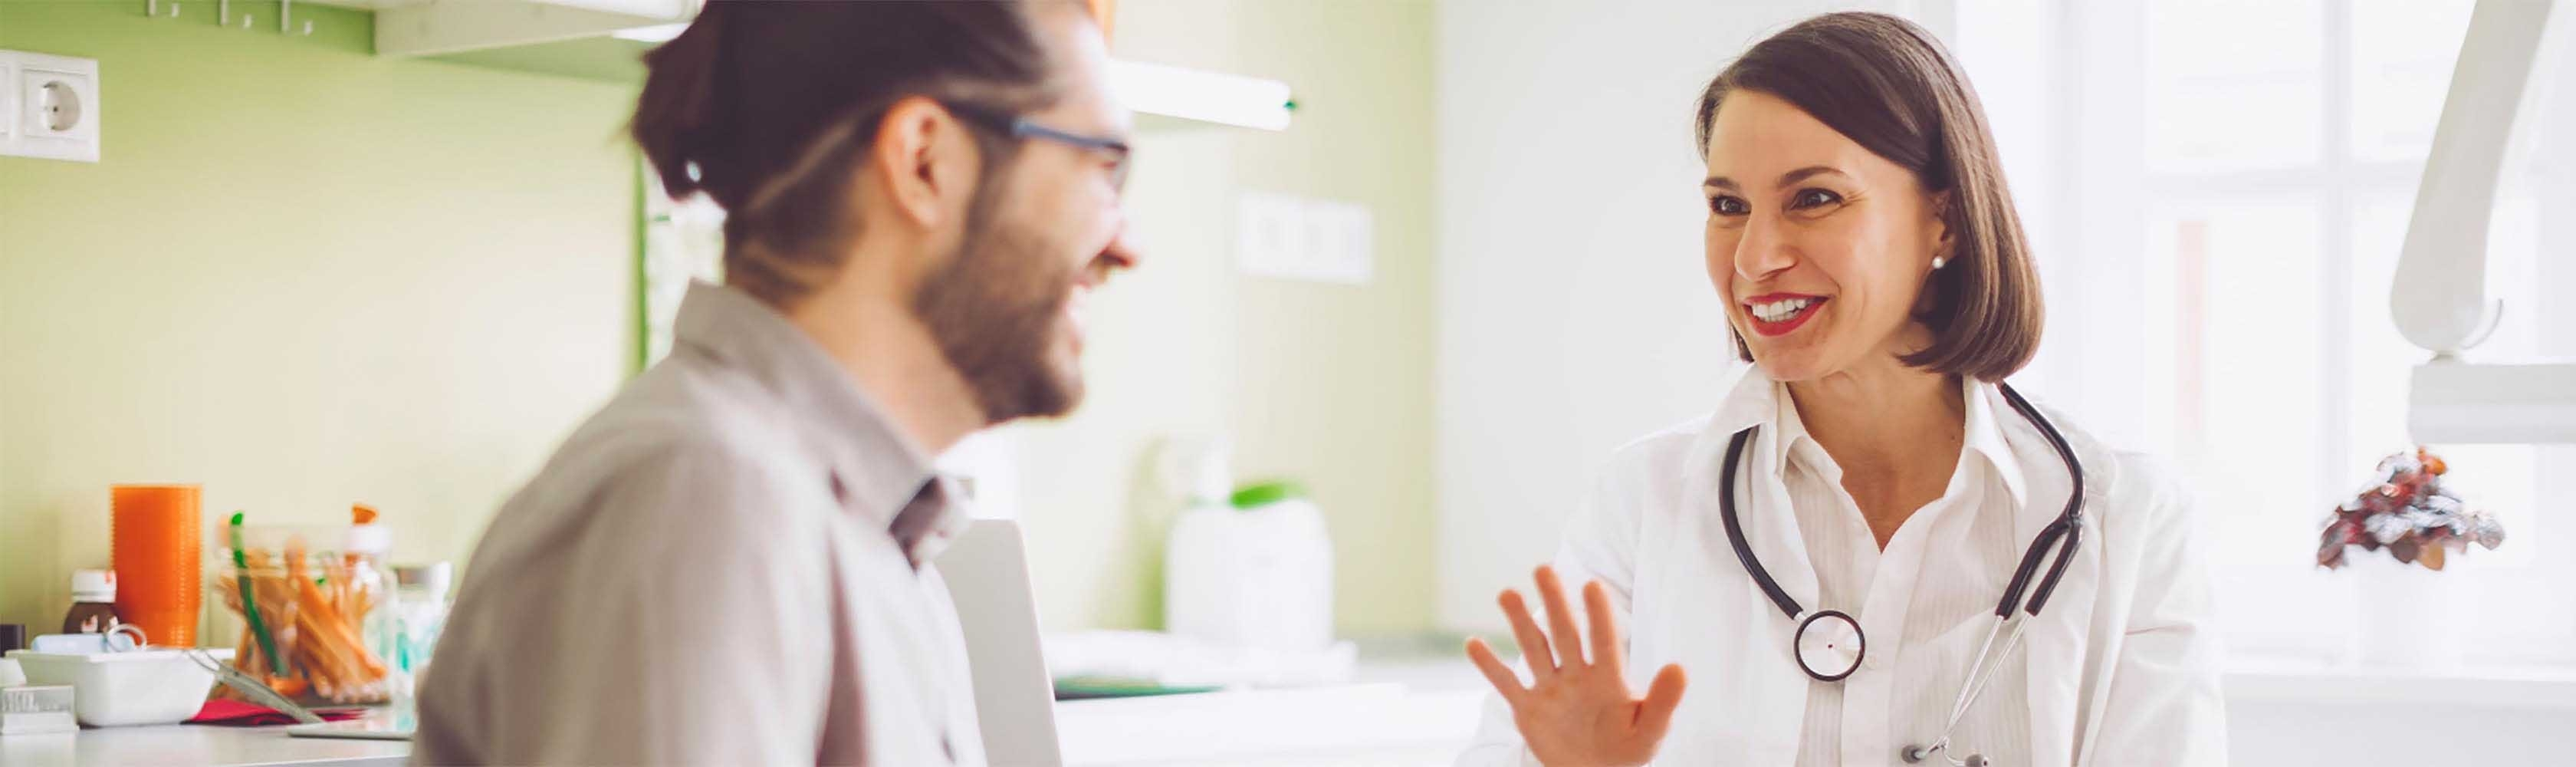 Doctor and patient talk to each other during a visit